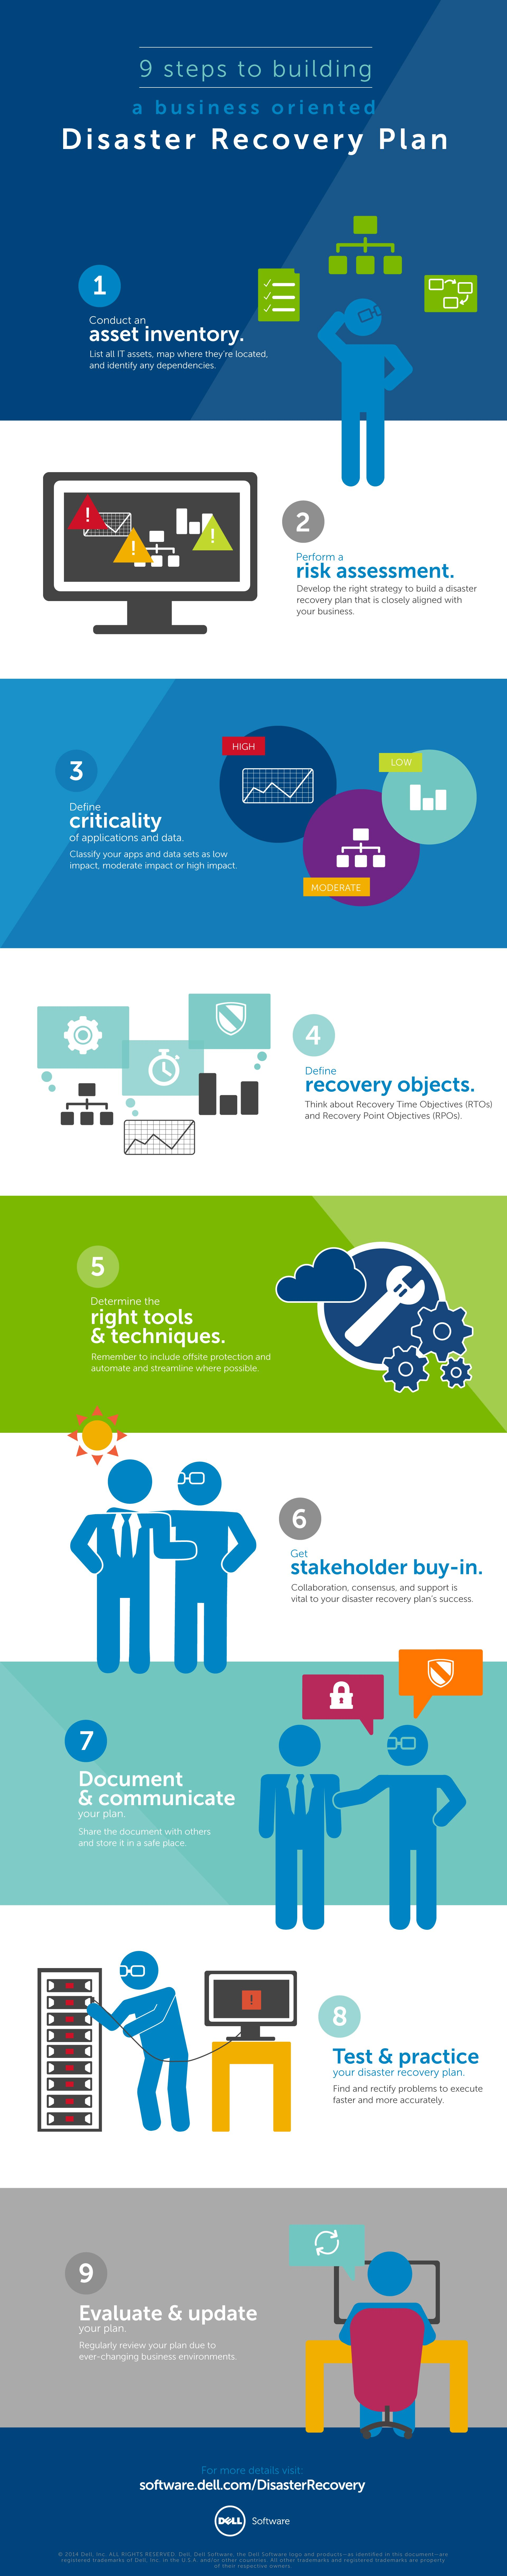 Steps To Building A BusinessOriented Disaster Recovery Plan